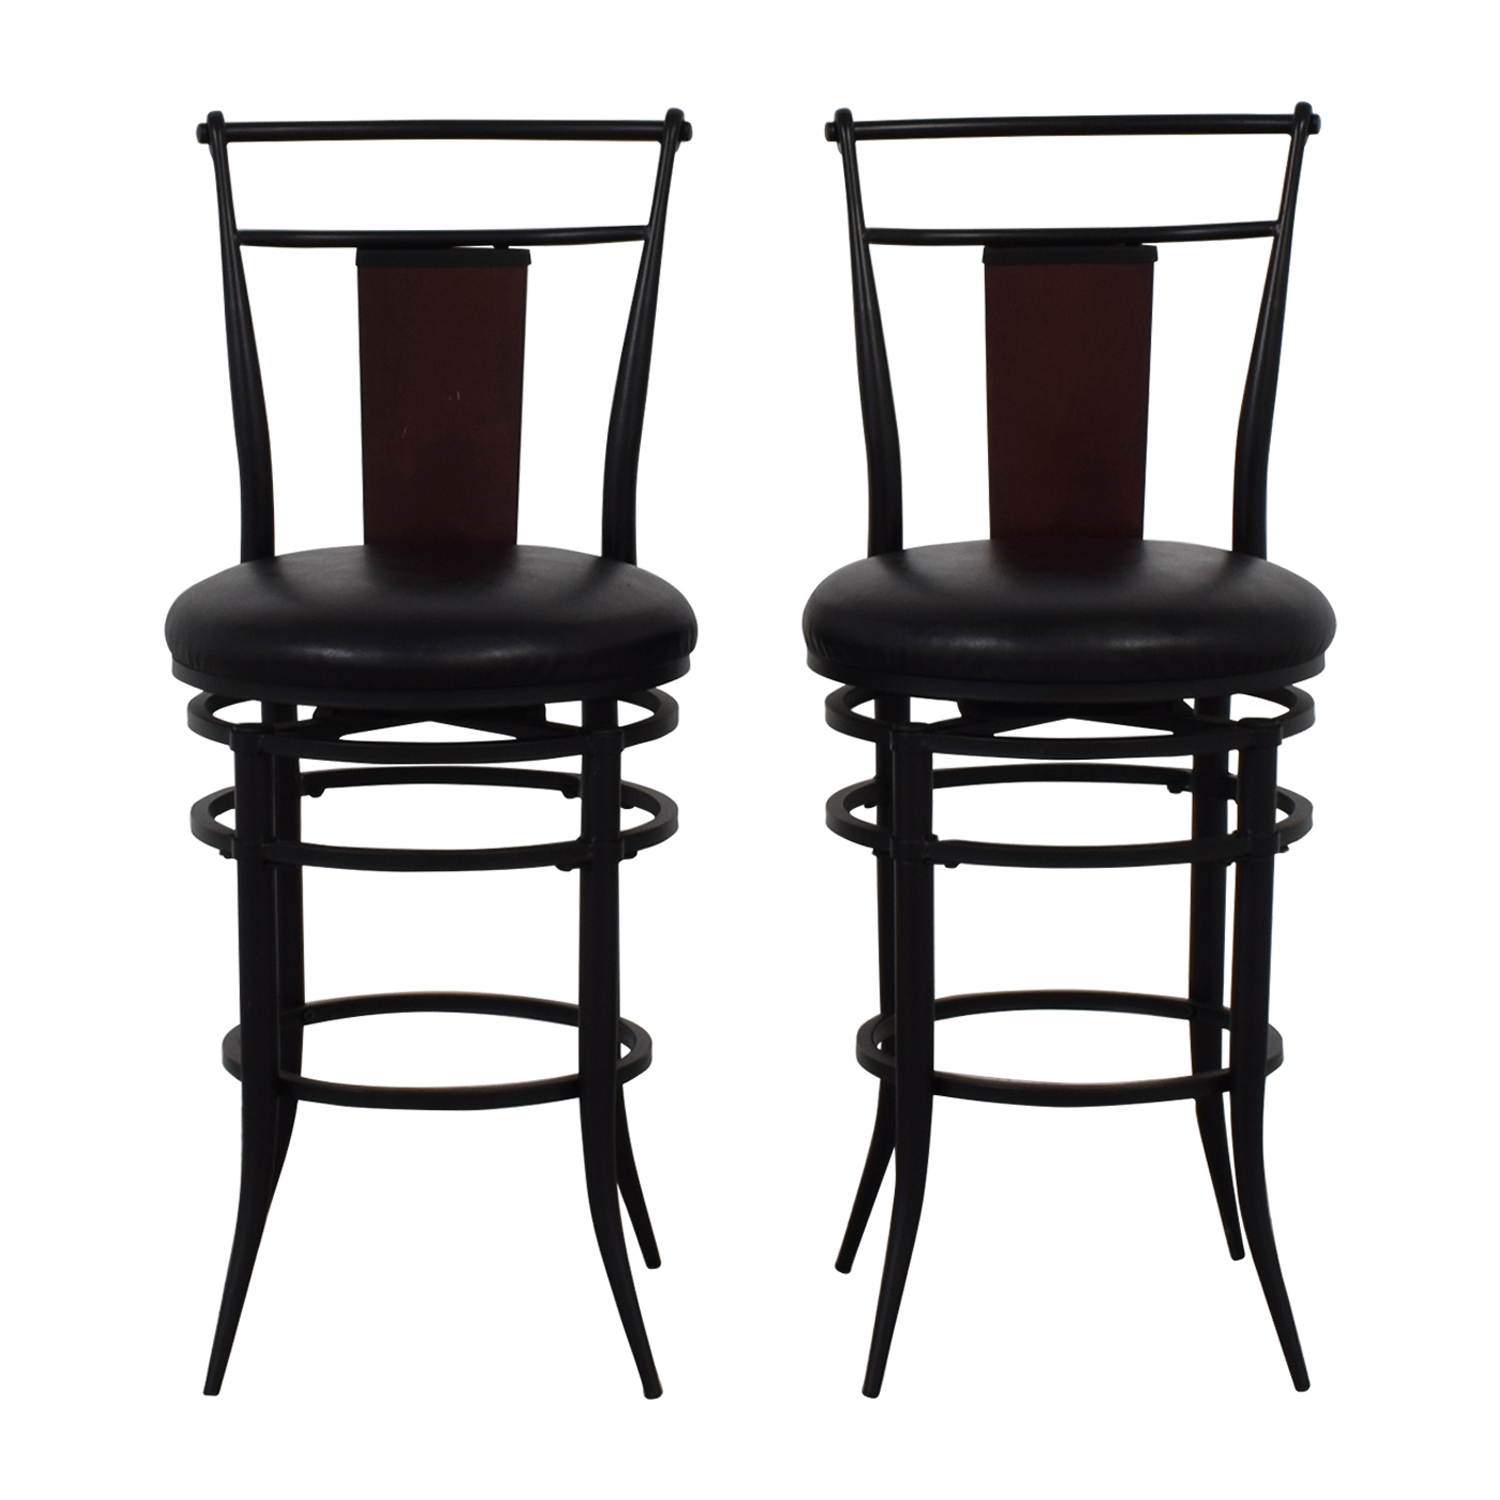 Hillsdale Furniture Hillsdale Furniture Midtown Black Swivel Counter Stools on sale